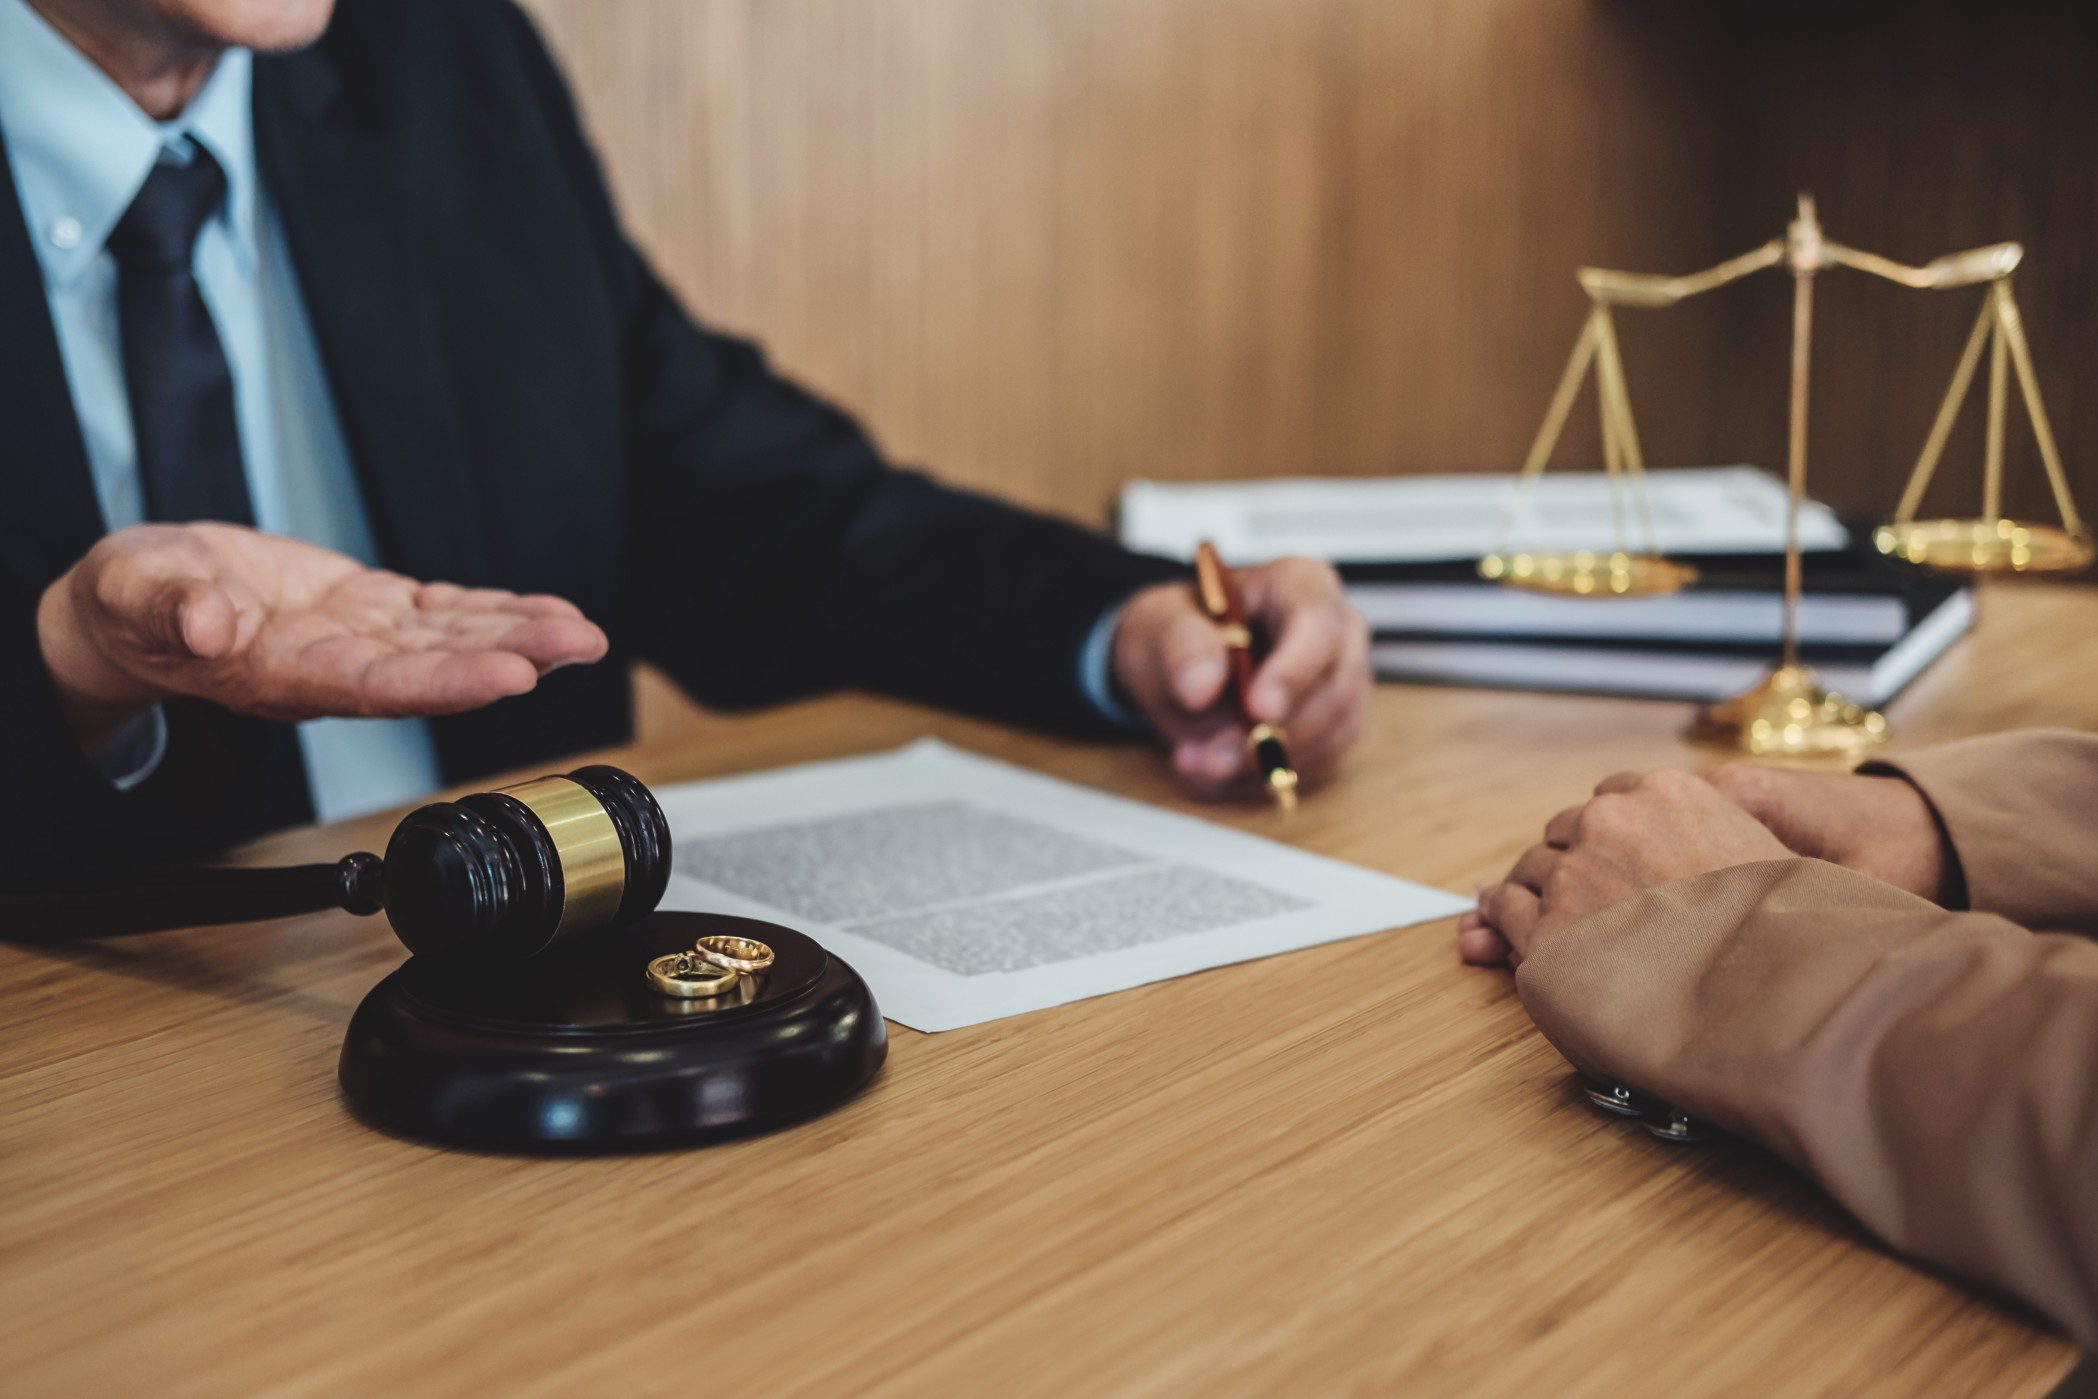 marriage-divorce-on-judge-gavel-deciding-consultation-between-a-businesswoman-and-male-lawyer-or_t20_B89apO